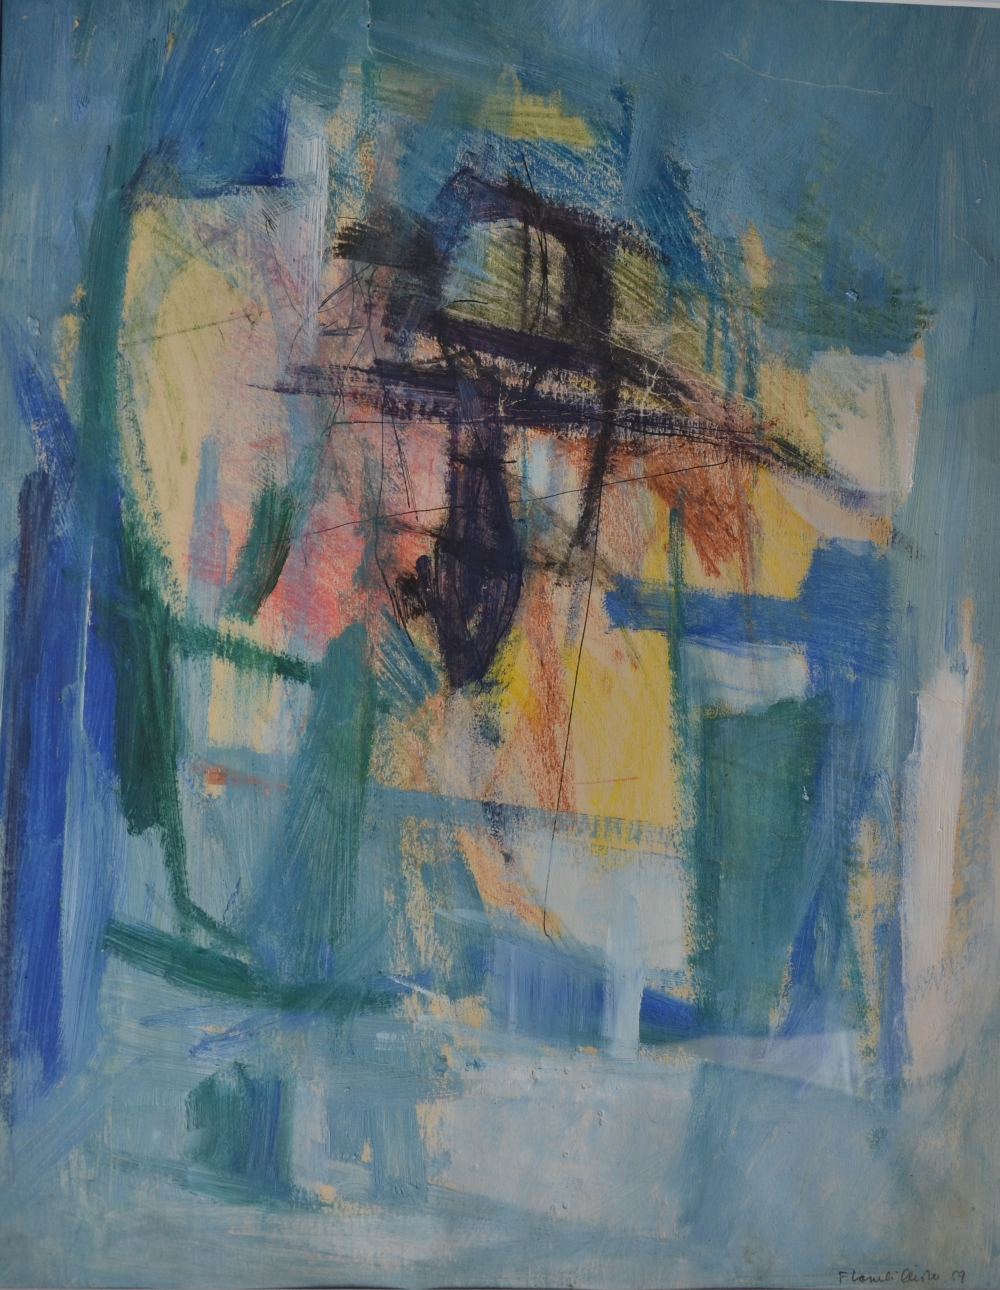 ZOMERS ABSTRACT